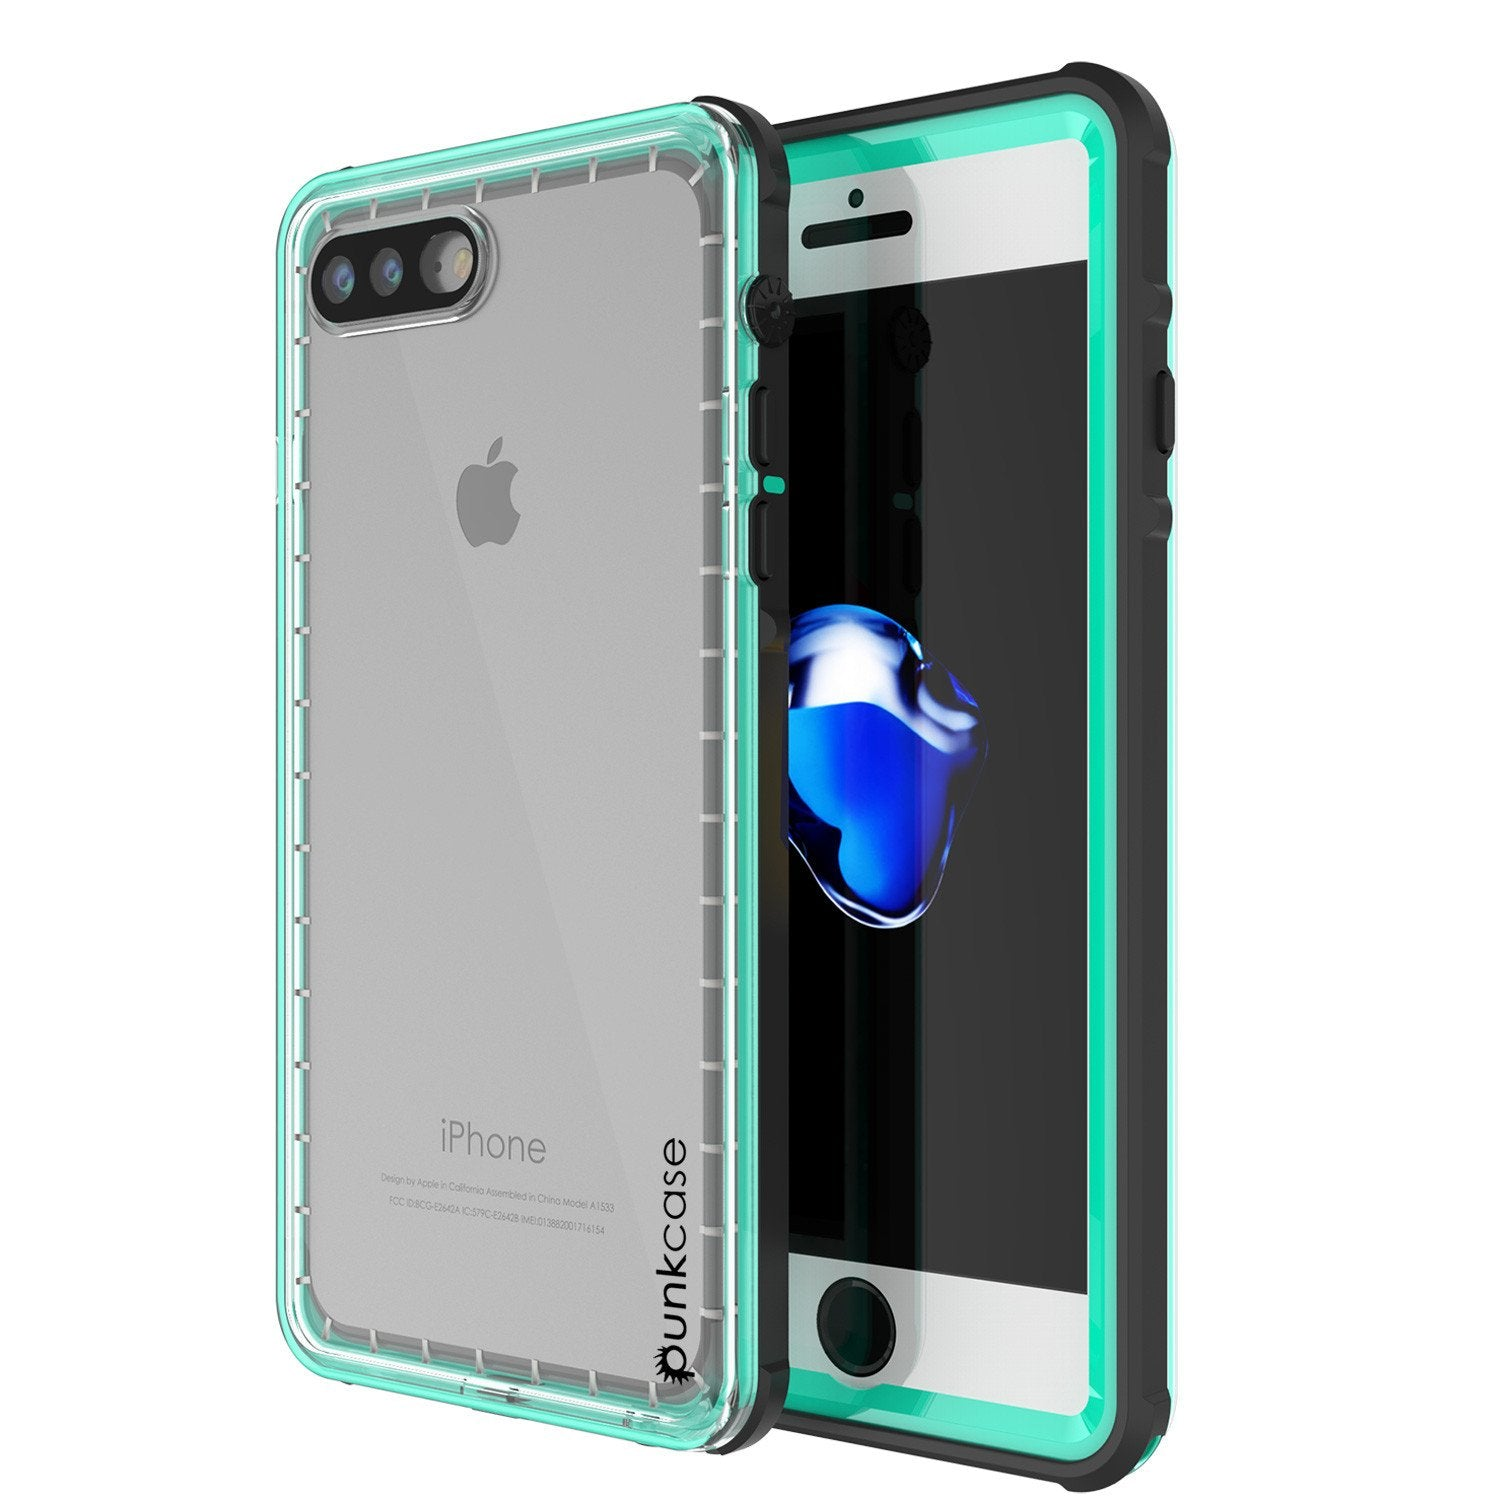 iPhone 7+ Plus Waterproof Case, PUNKcase CRYSTAL Teal W/ Attached Screen Protector  | Warranty